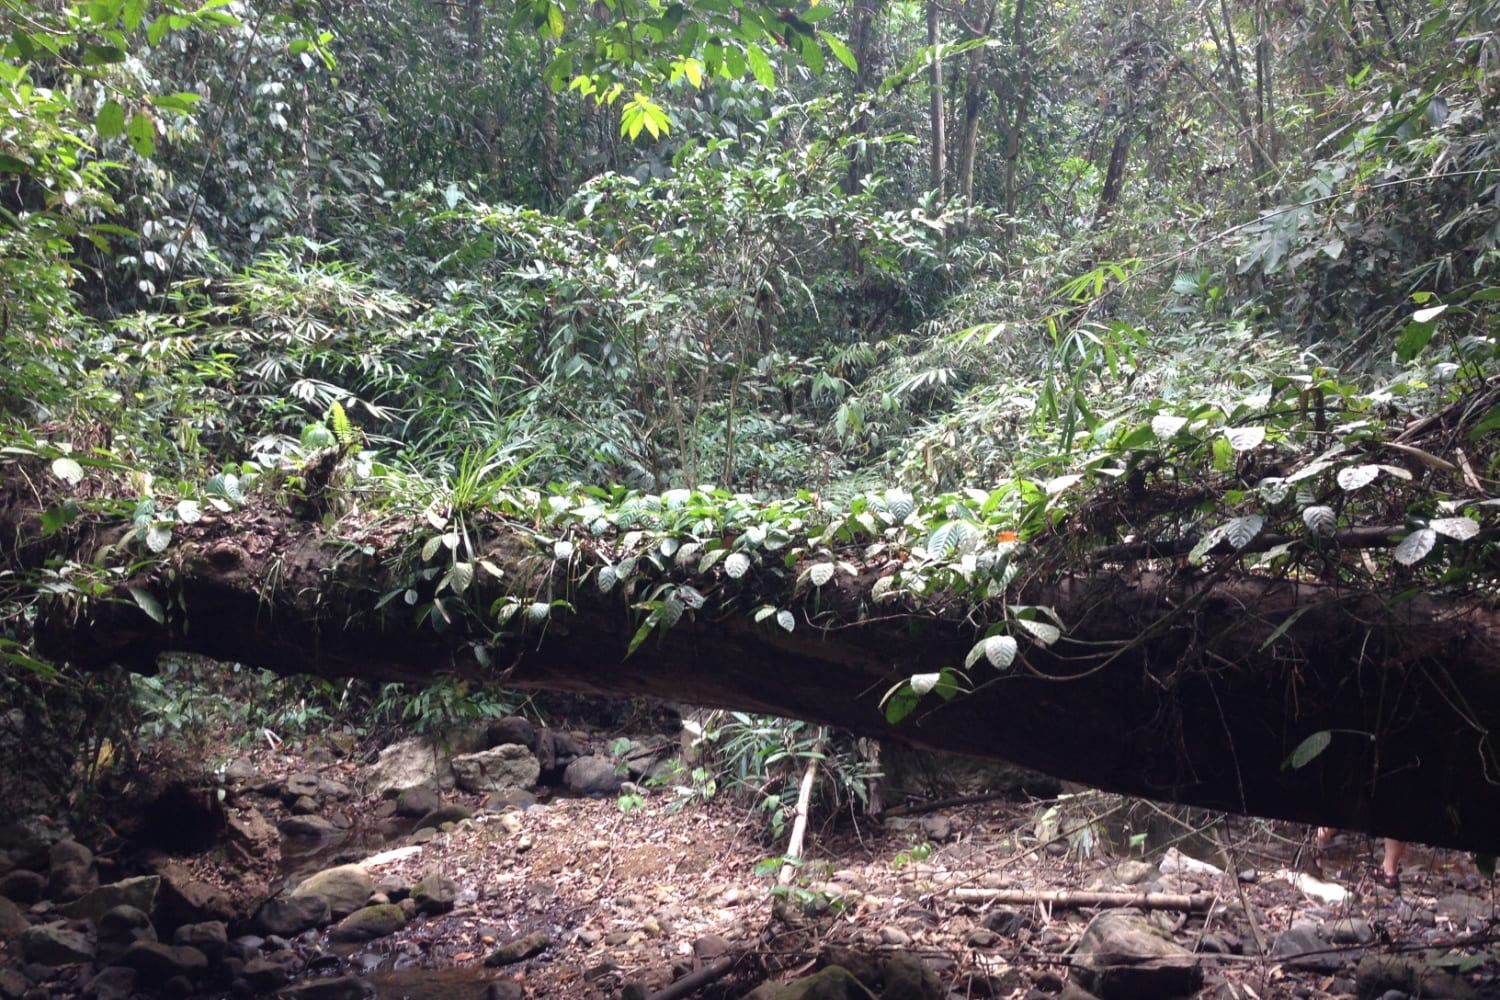 The dense forest of Khao Sok Park